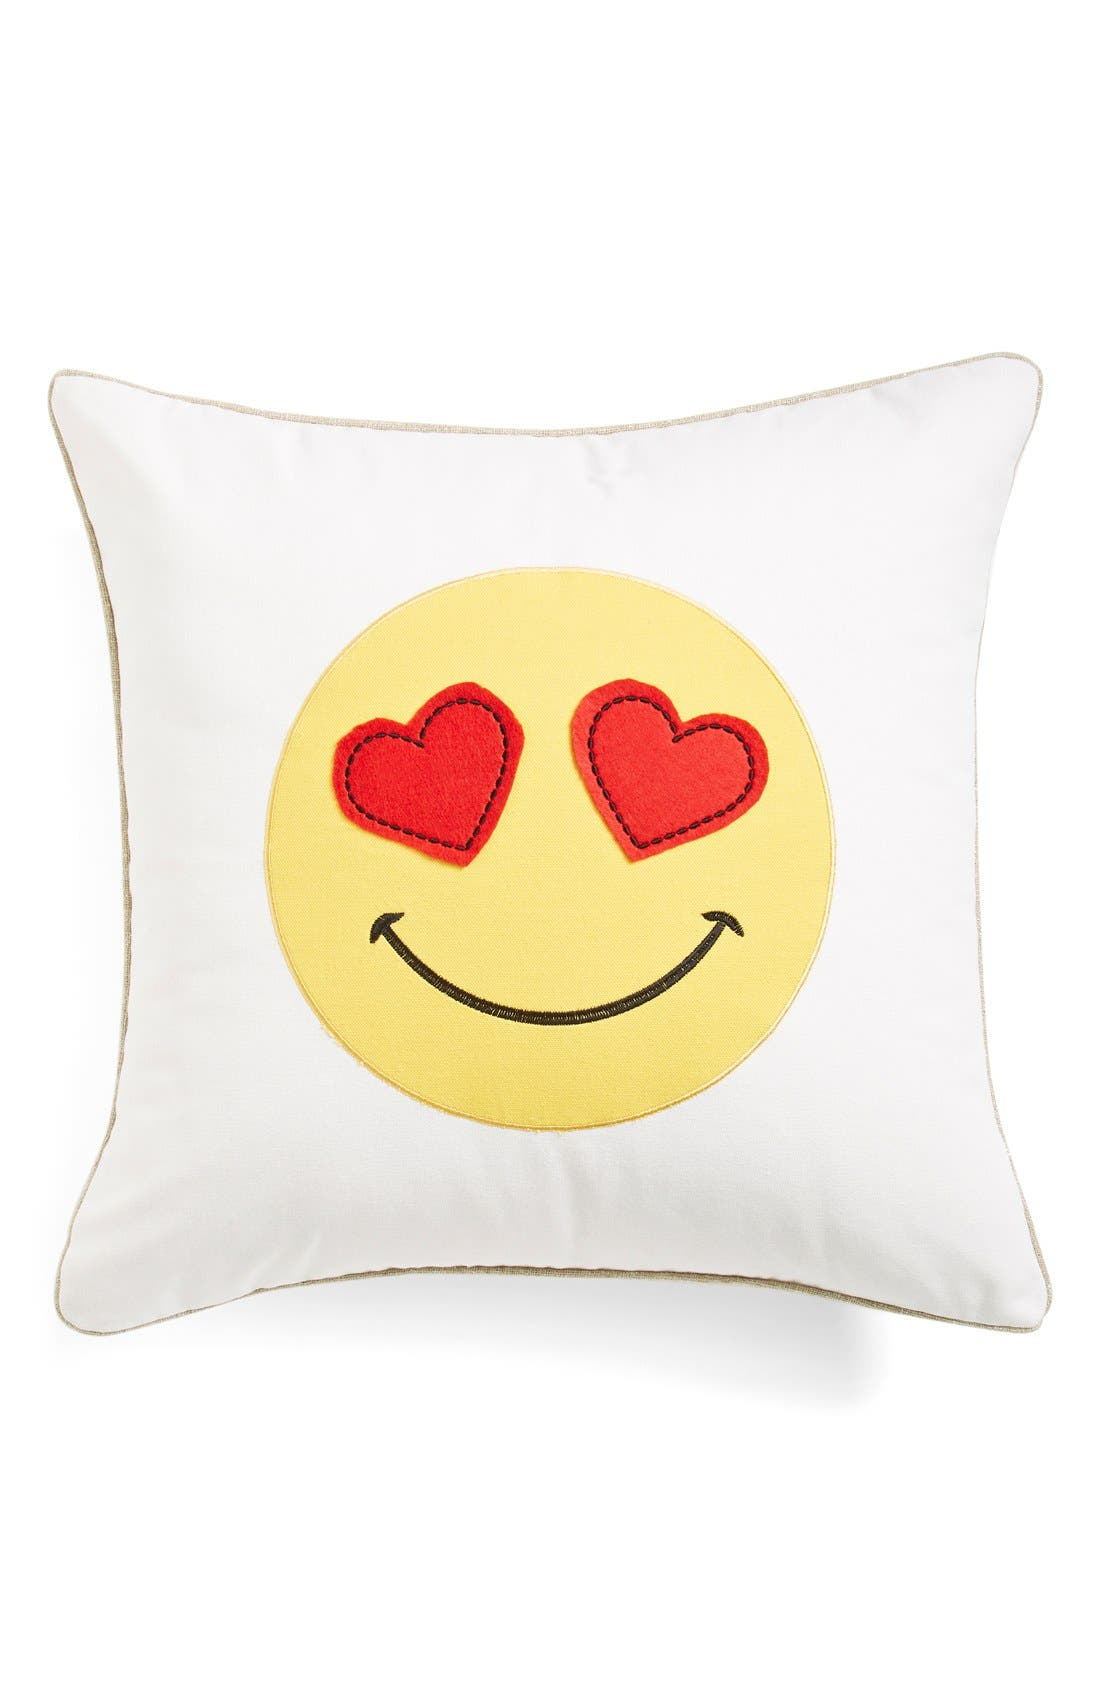 Alternate Image 1 Selected - Levtex 'Smiling Heart' Pillow